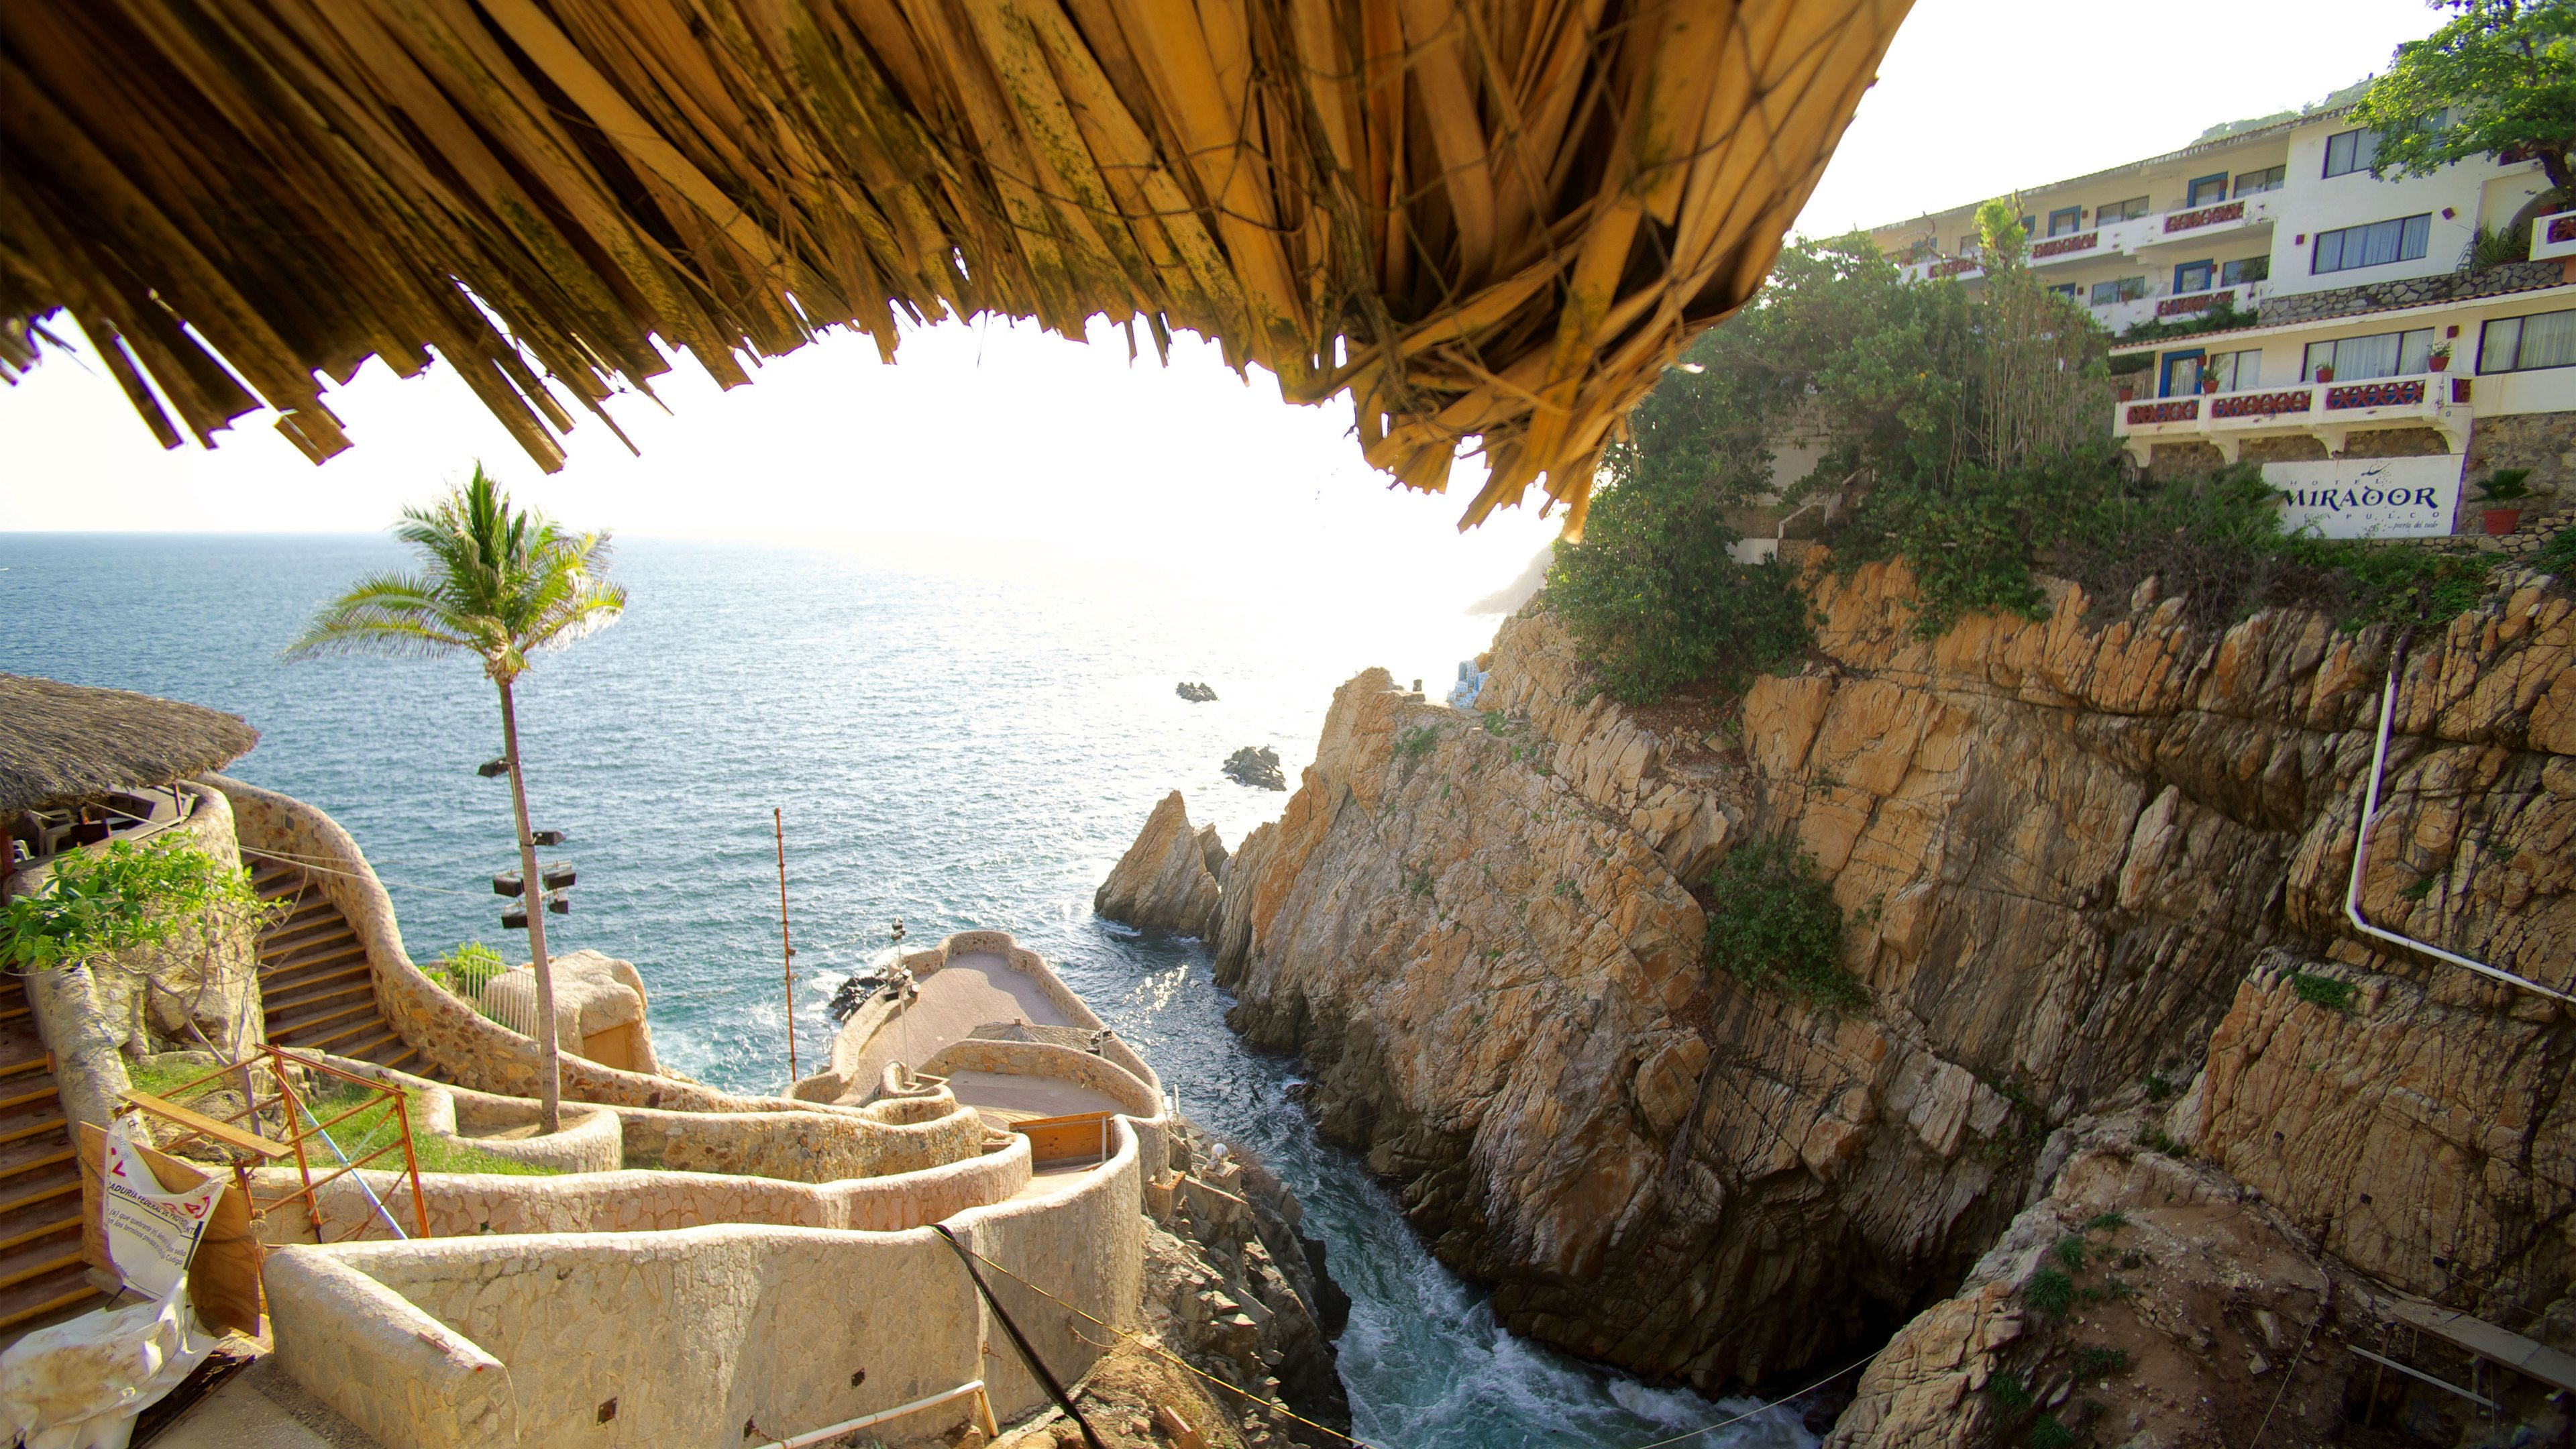 View from restaurant overlooking cliffs in Acapulco